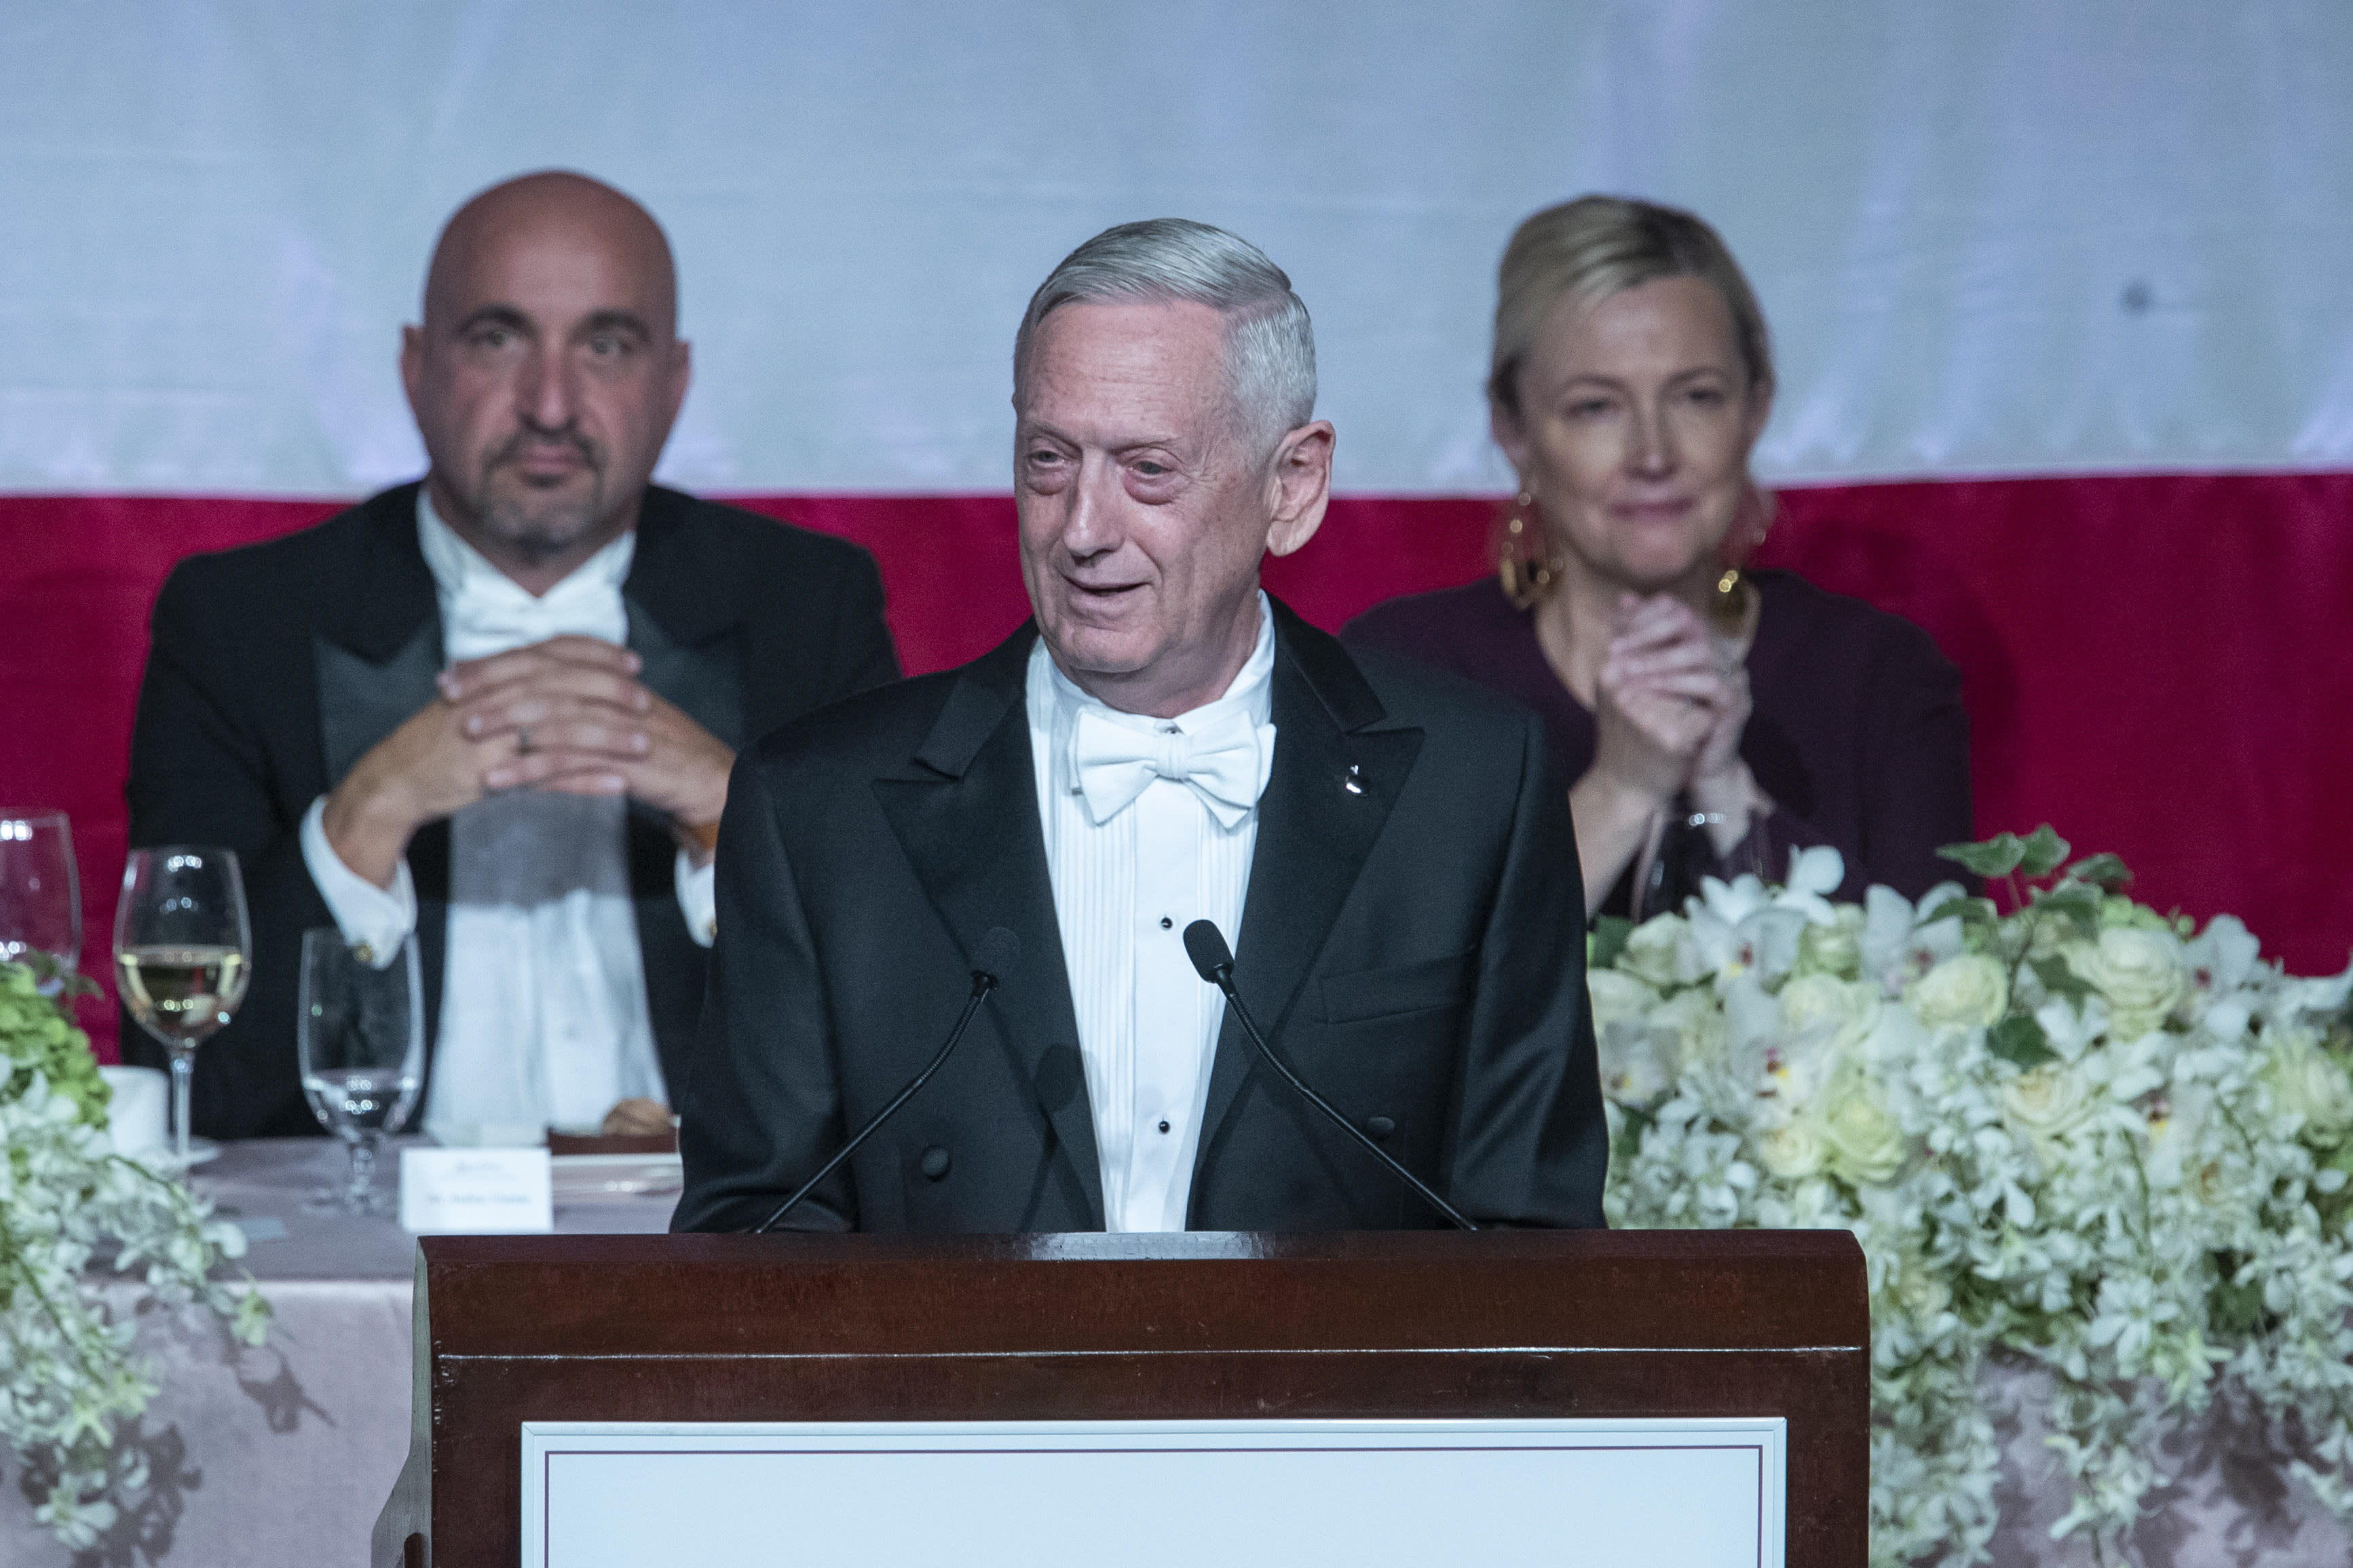 Mattis Celebrates Trump Insult: 'I'm Meryl Streep of Generals'